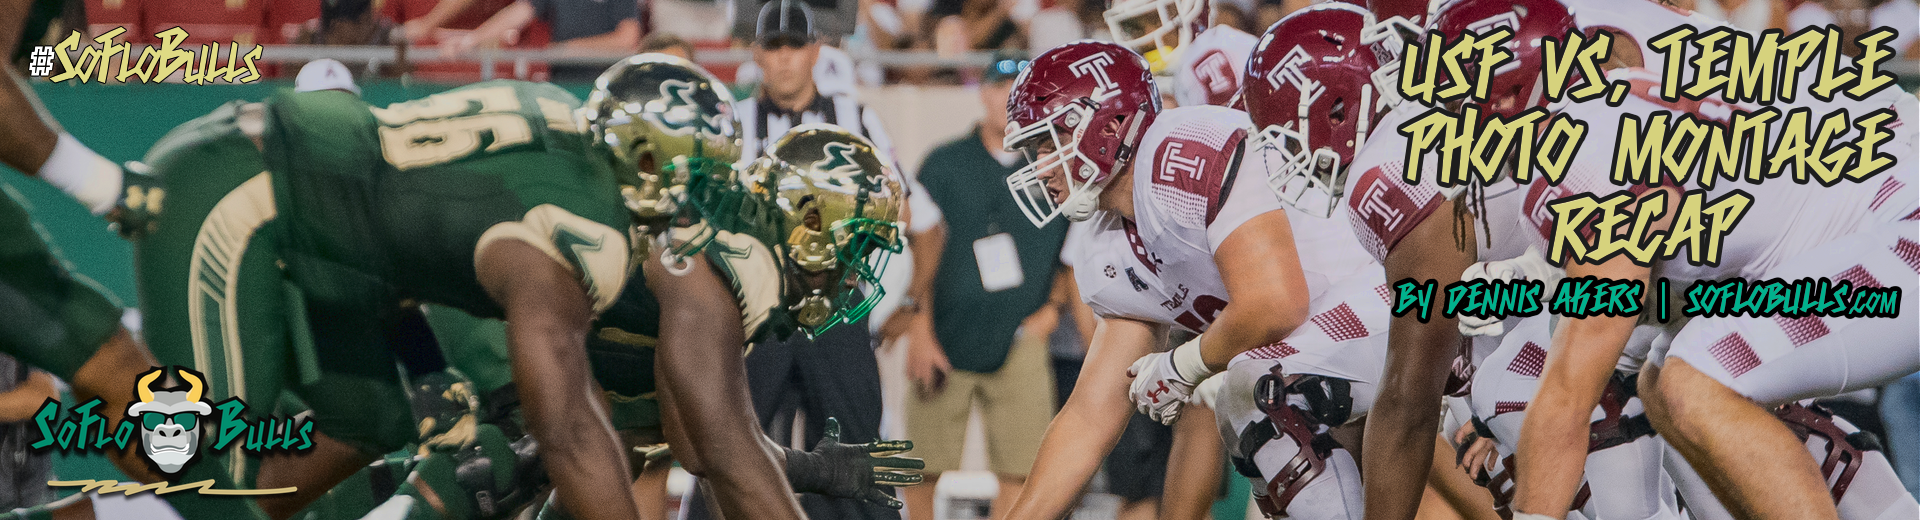 Temple vs. USF 2017 Photo Montage ReCap by Dennis Akers Article Header Image | SoFloBulls.com